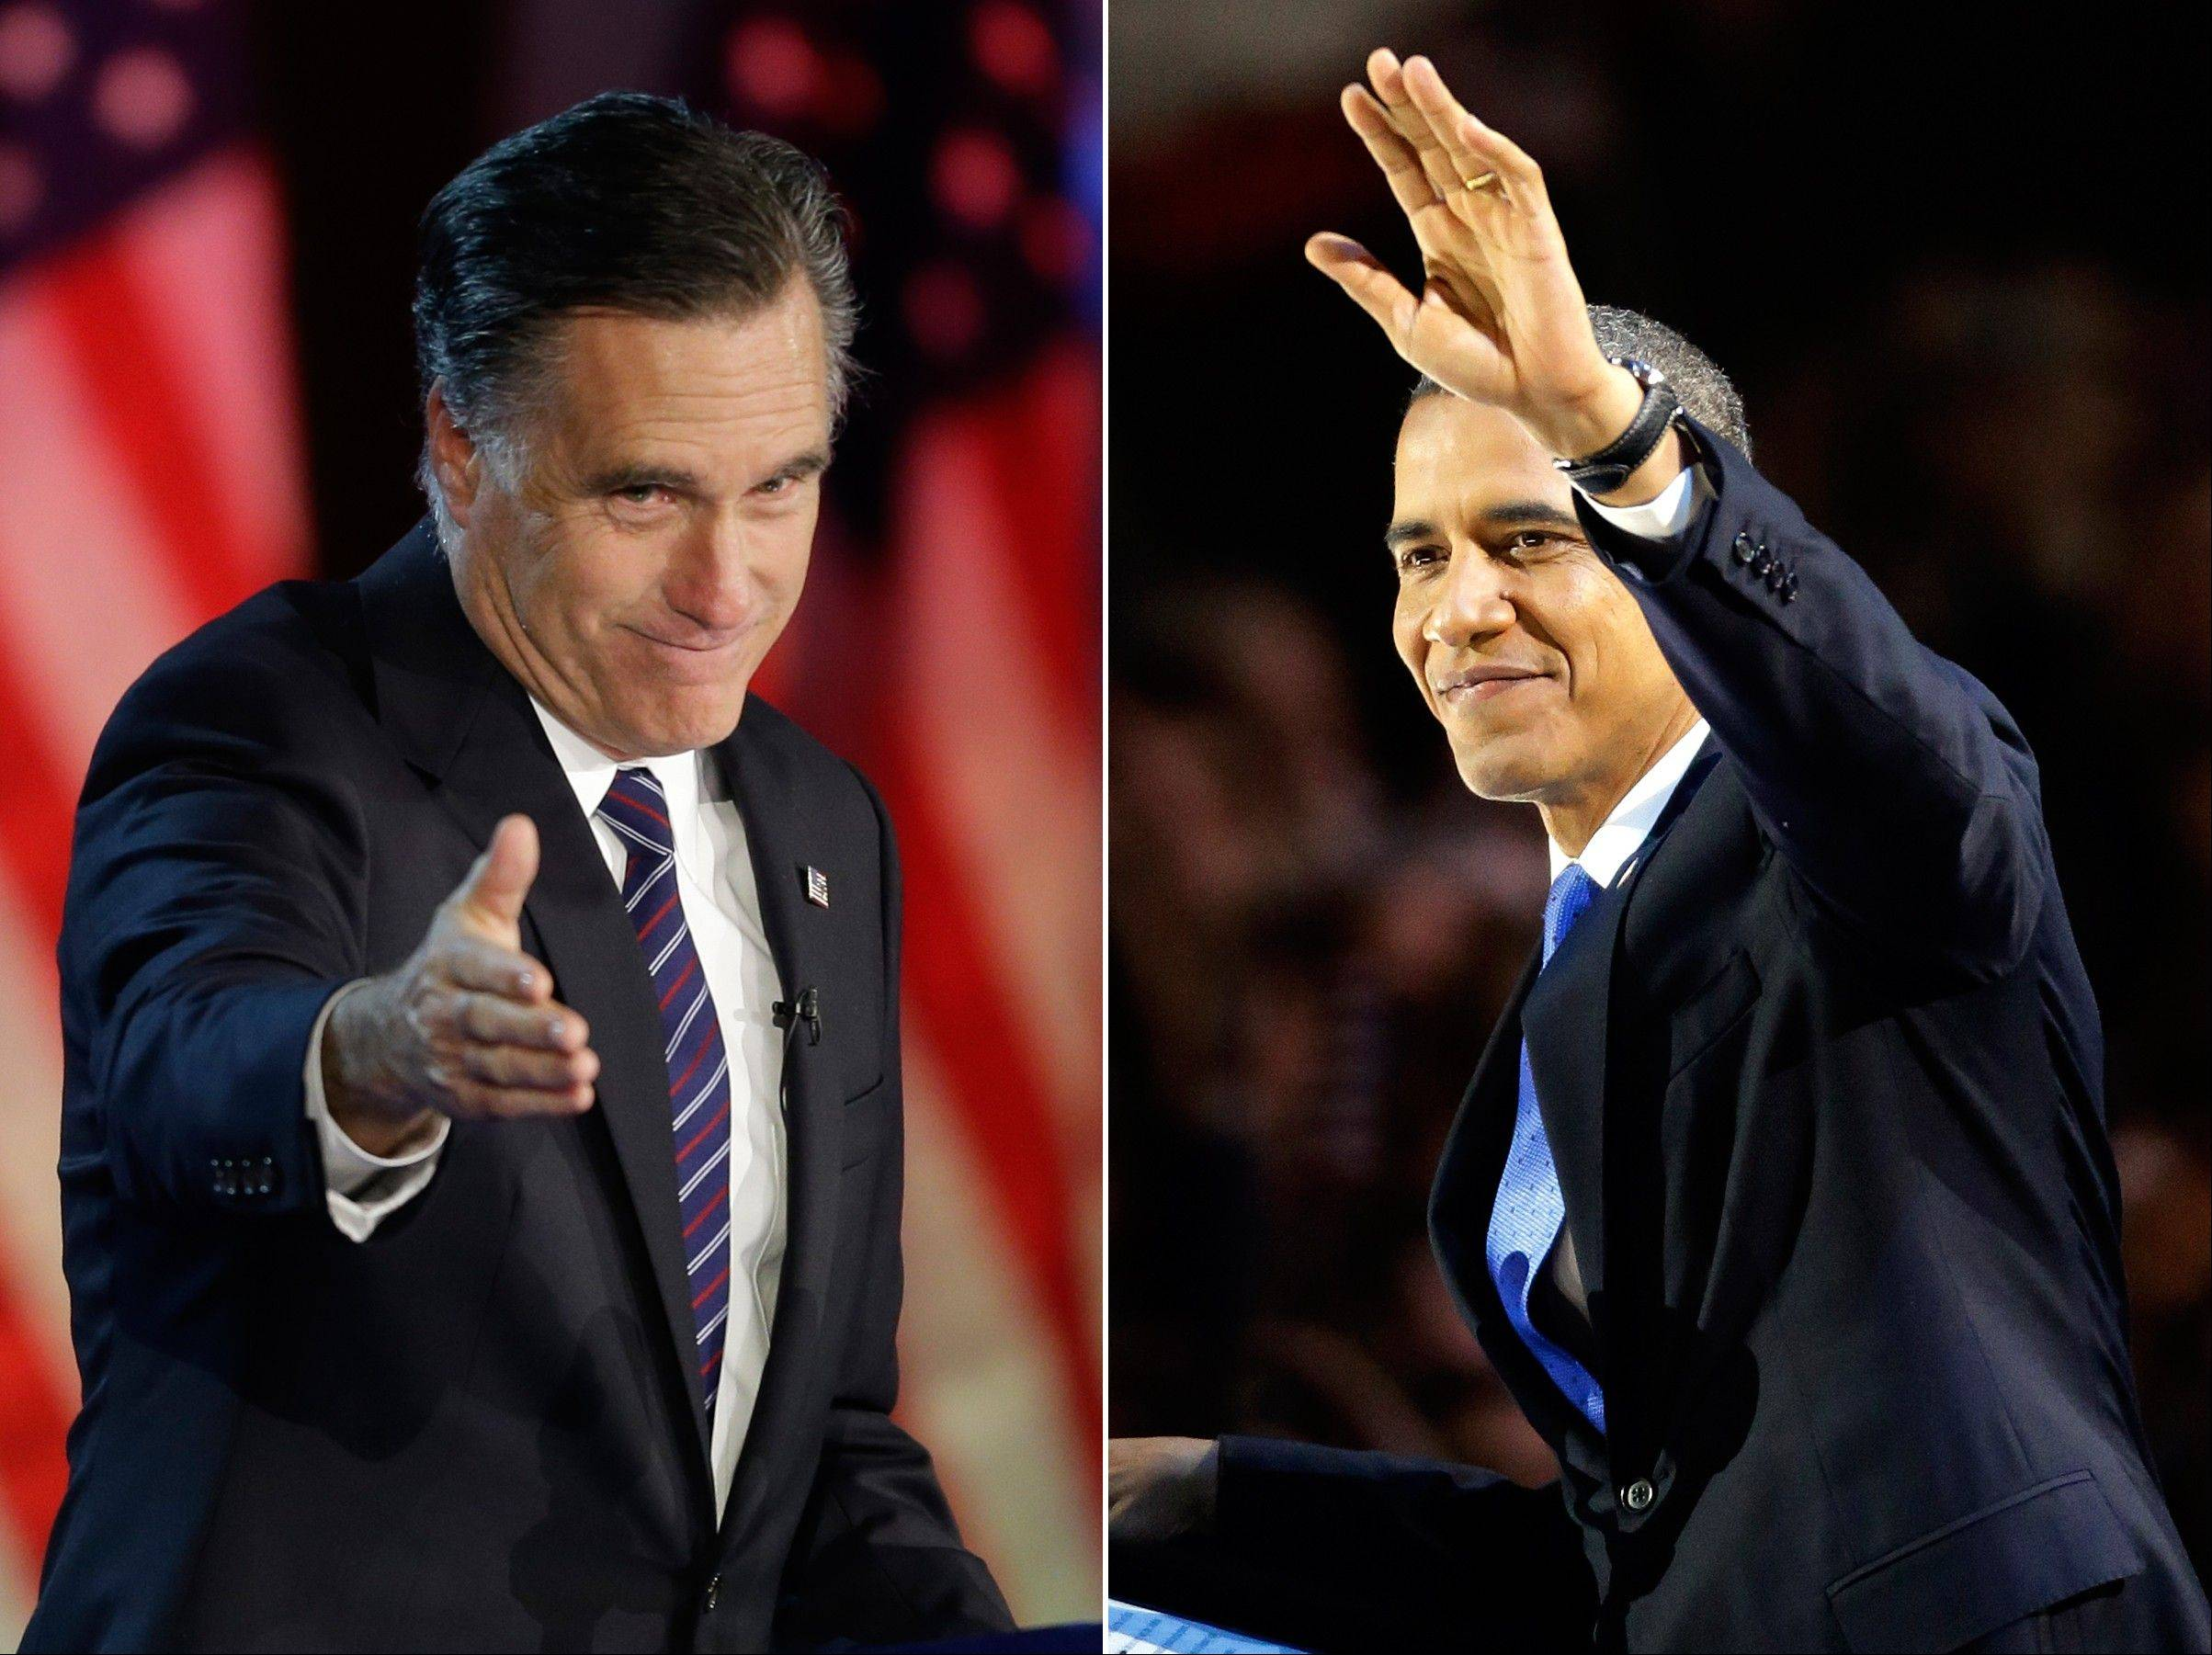 In this photo combo, Republican presidential candidate, former Massachusetts Gov. Mitt Romney gestures to supporters during his election night rally in Boston, left, and President Barack Obama waves to the crowd of supporters at his election night party in Chicago, Wednesday, Nov. 7, 2012. Obama defeated Romney to win a second term.